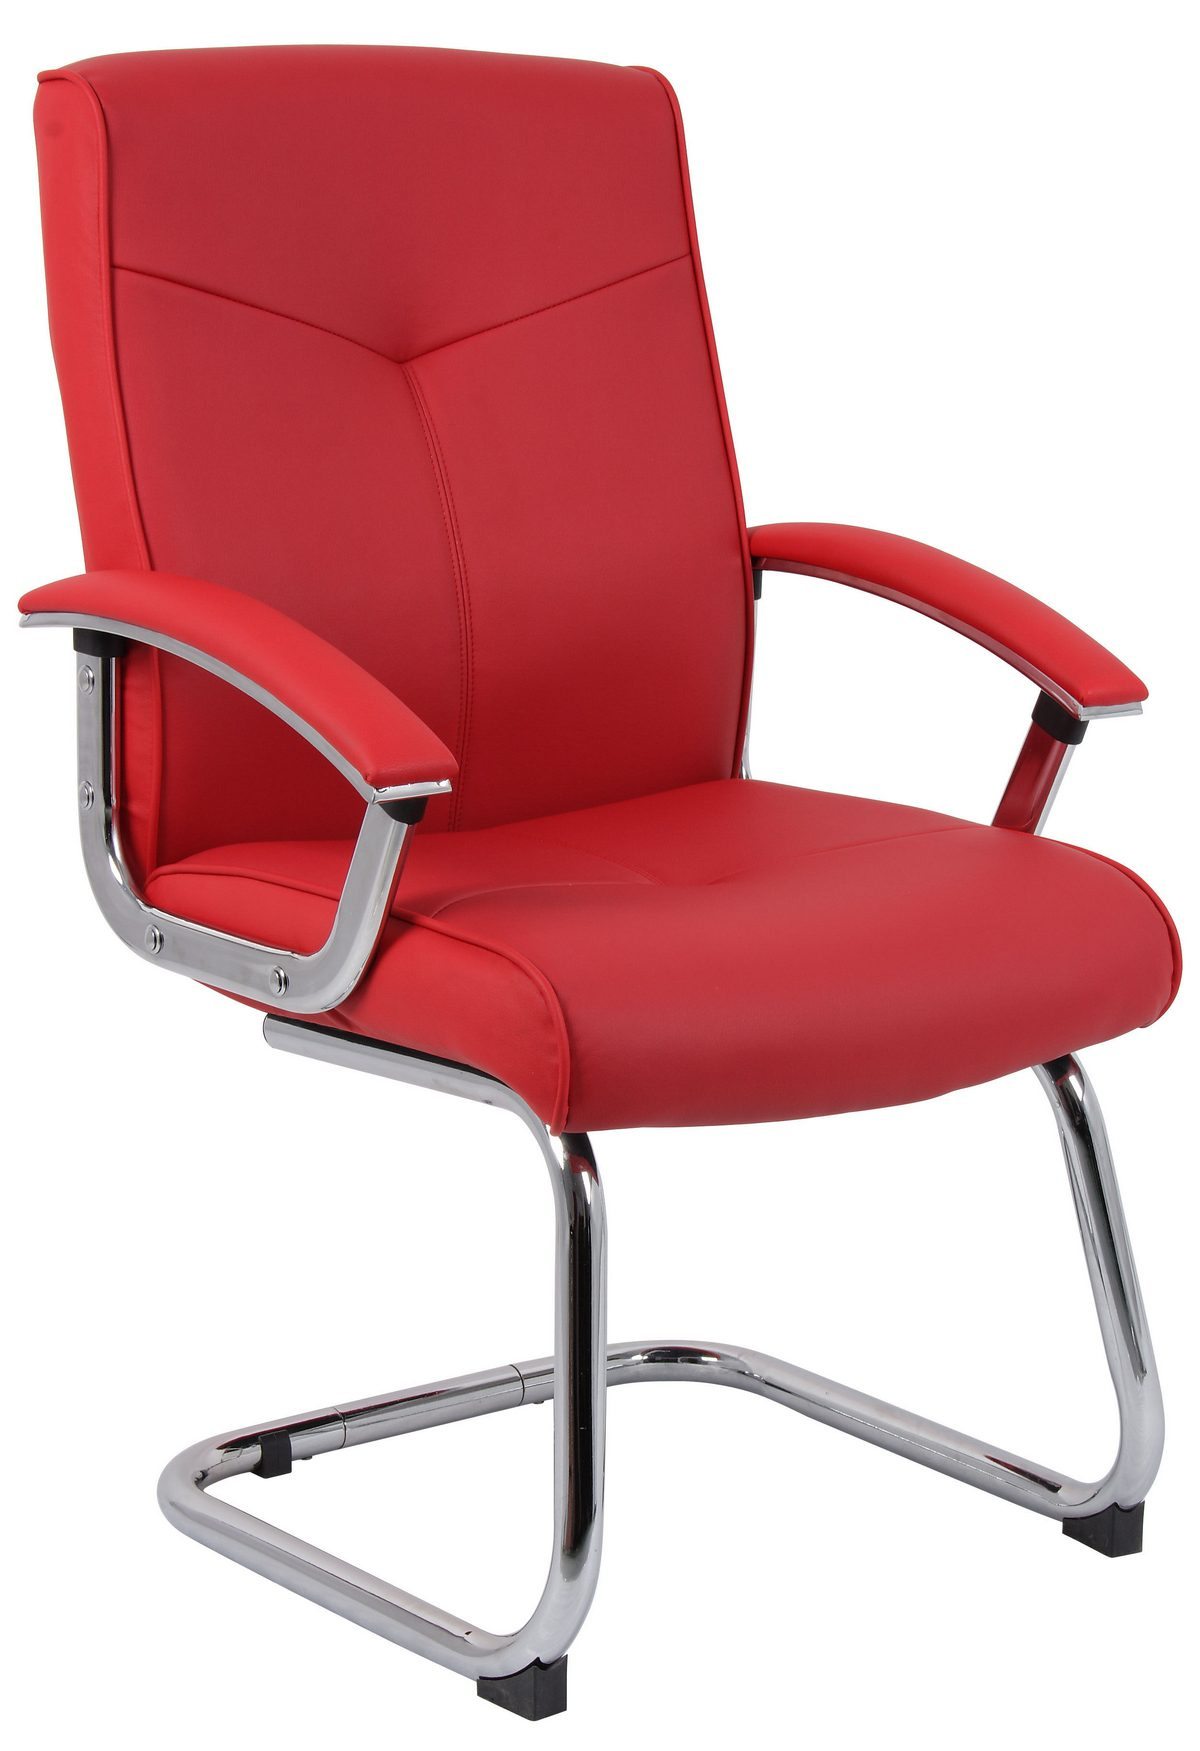 Grexikon Red Leather Faced Visitor Office Chair With Arms